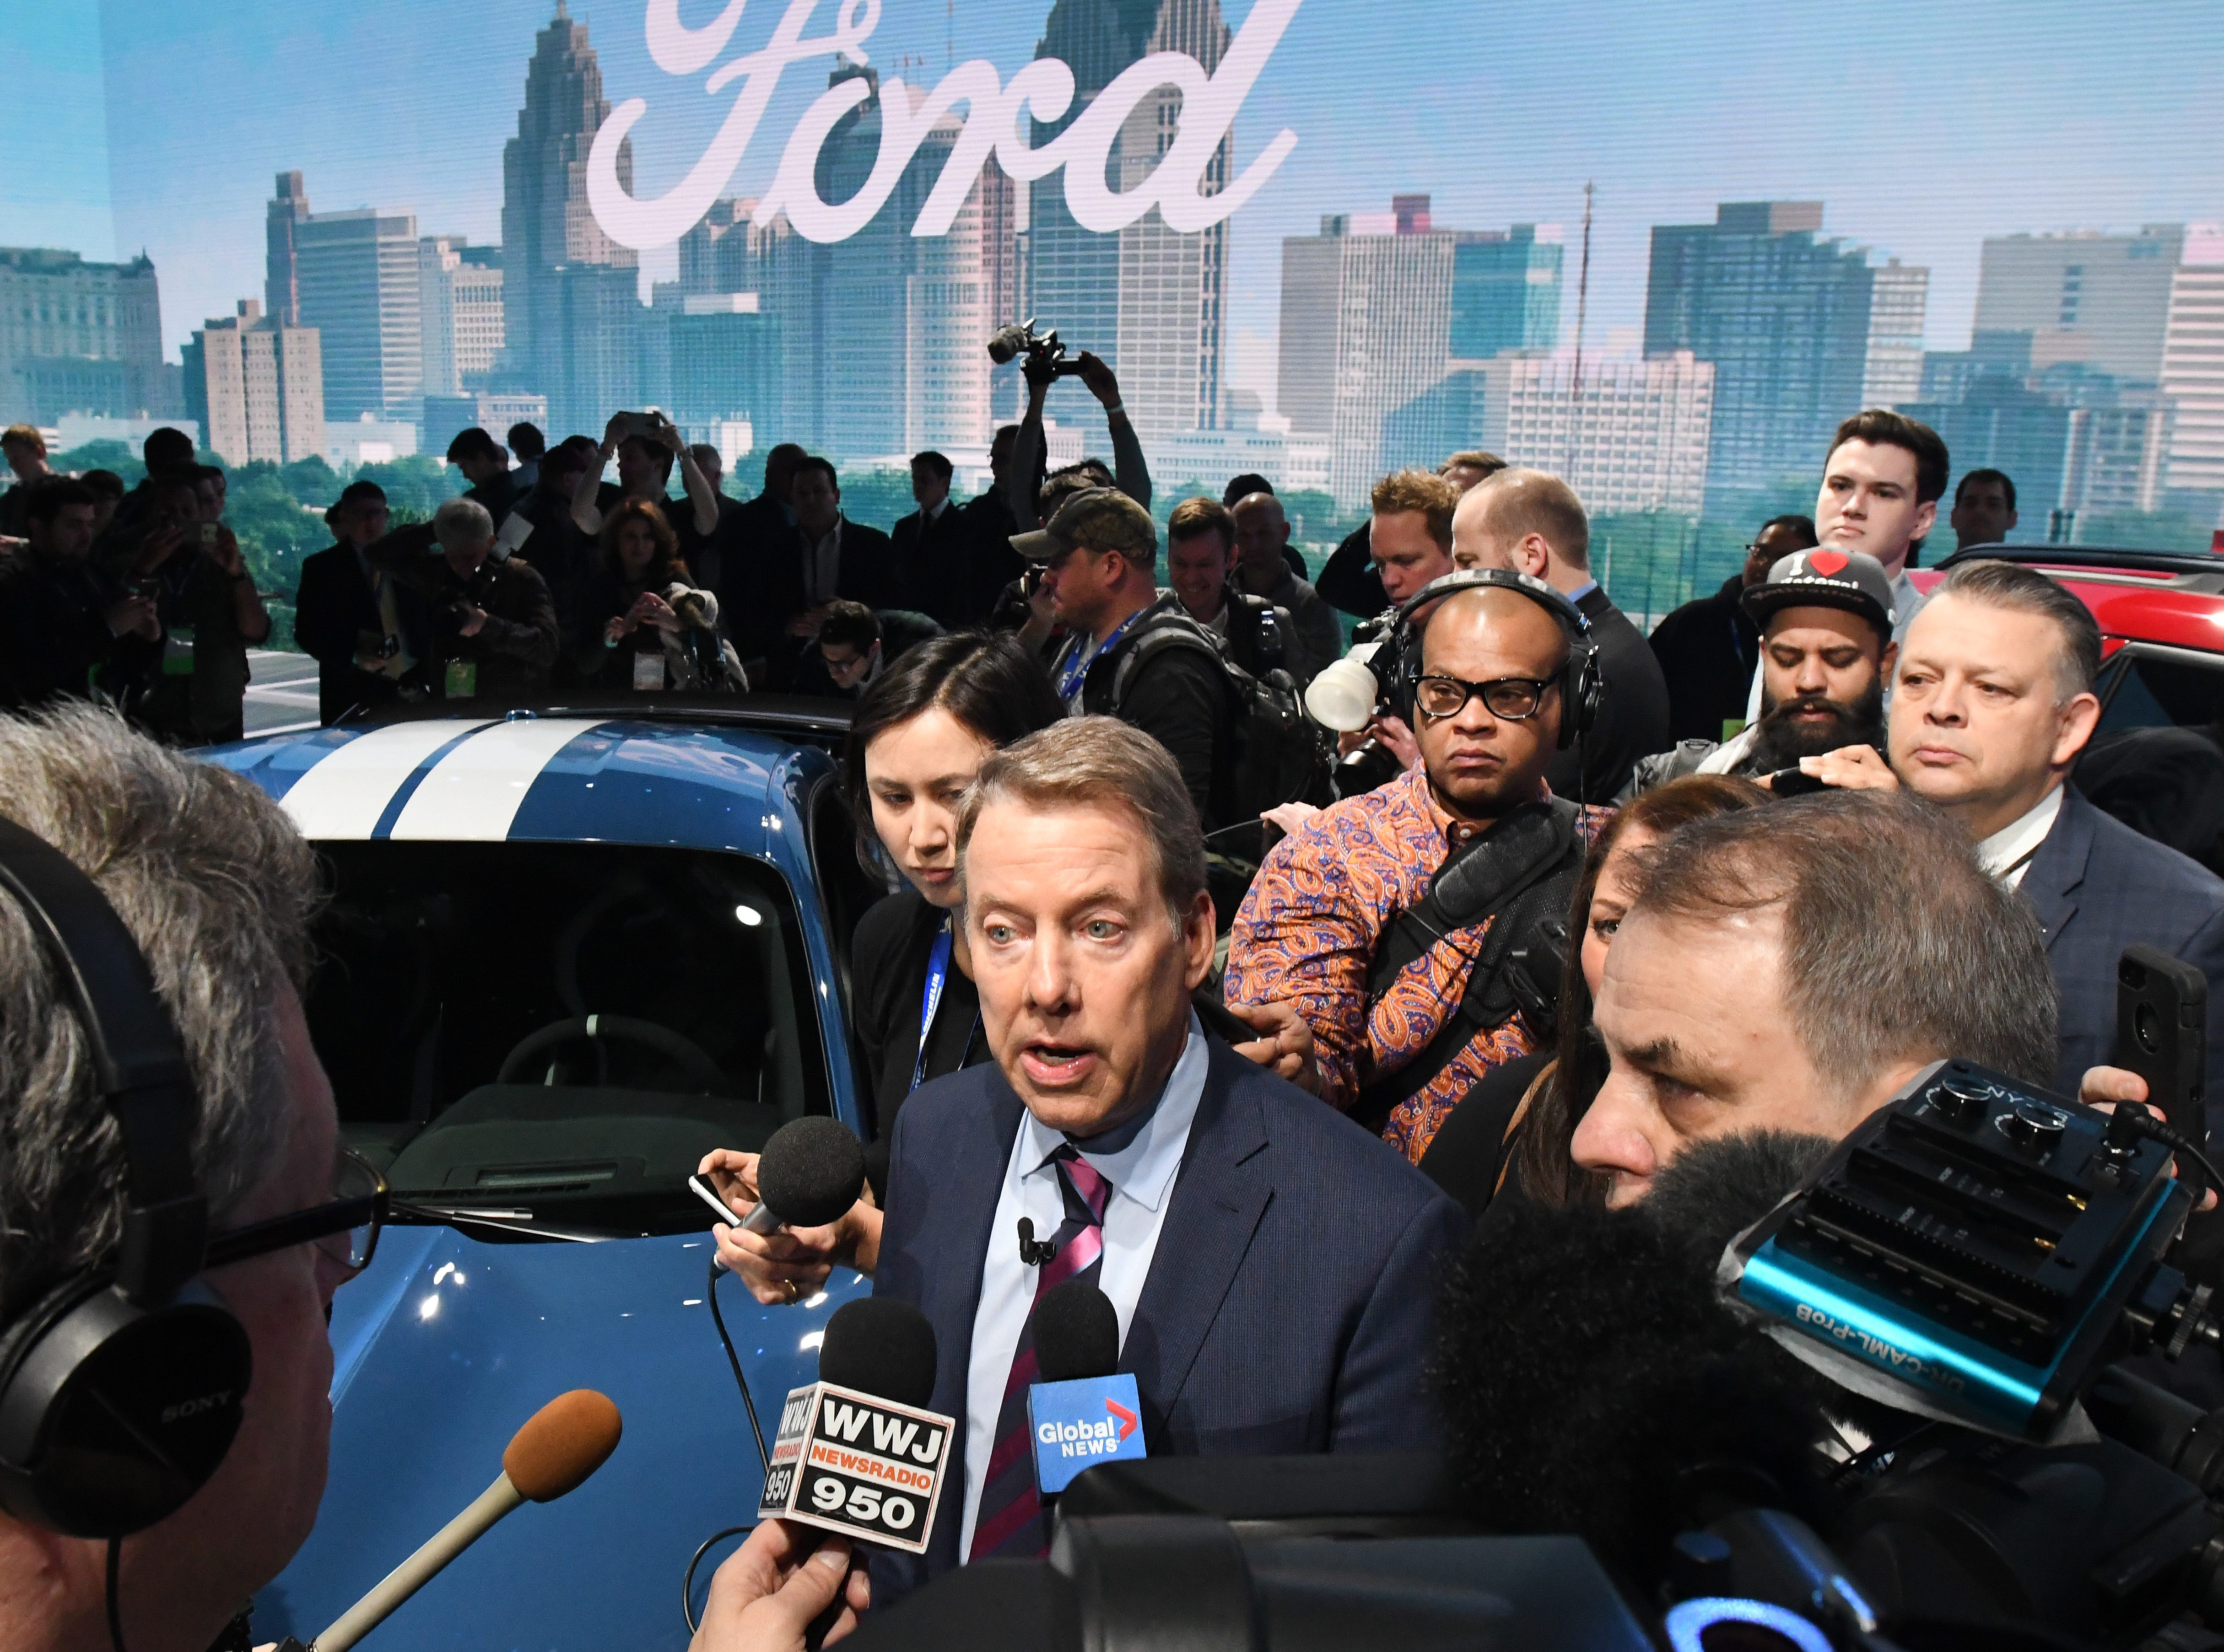 Ford Motor Company chairman Bill Ford speaks to the media after the reveal of the Shelby Mustang GT500 at the Detroit Auto Show Monday.